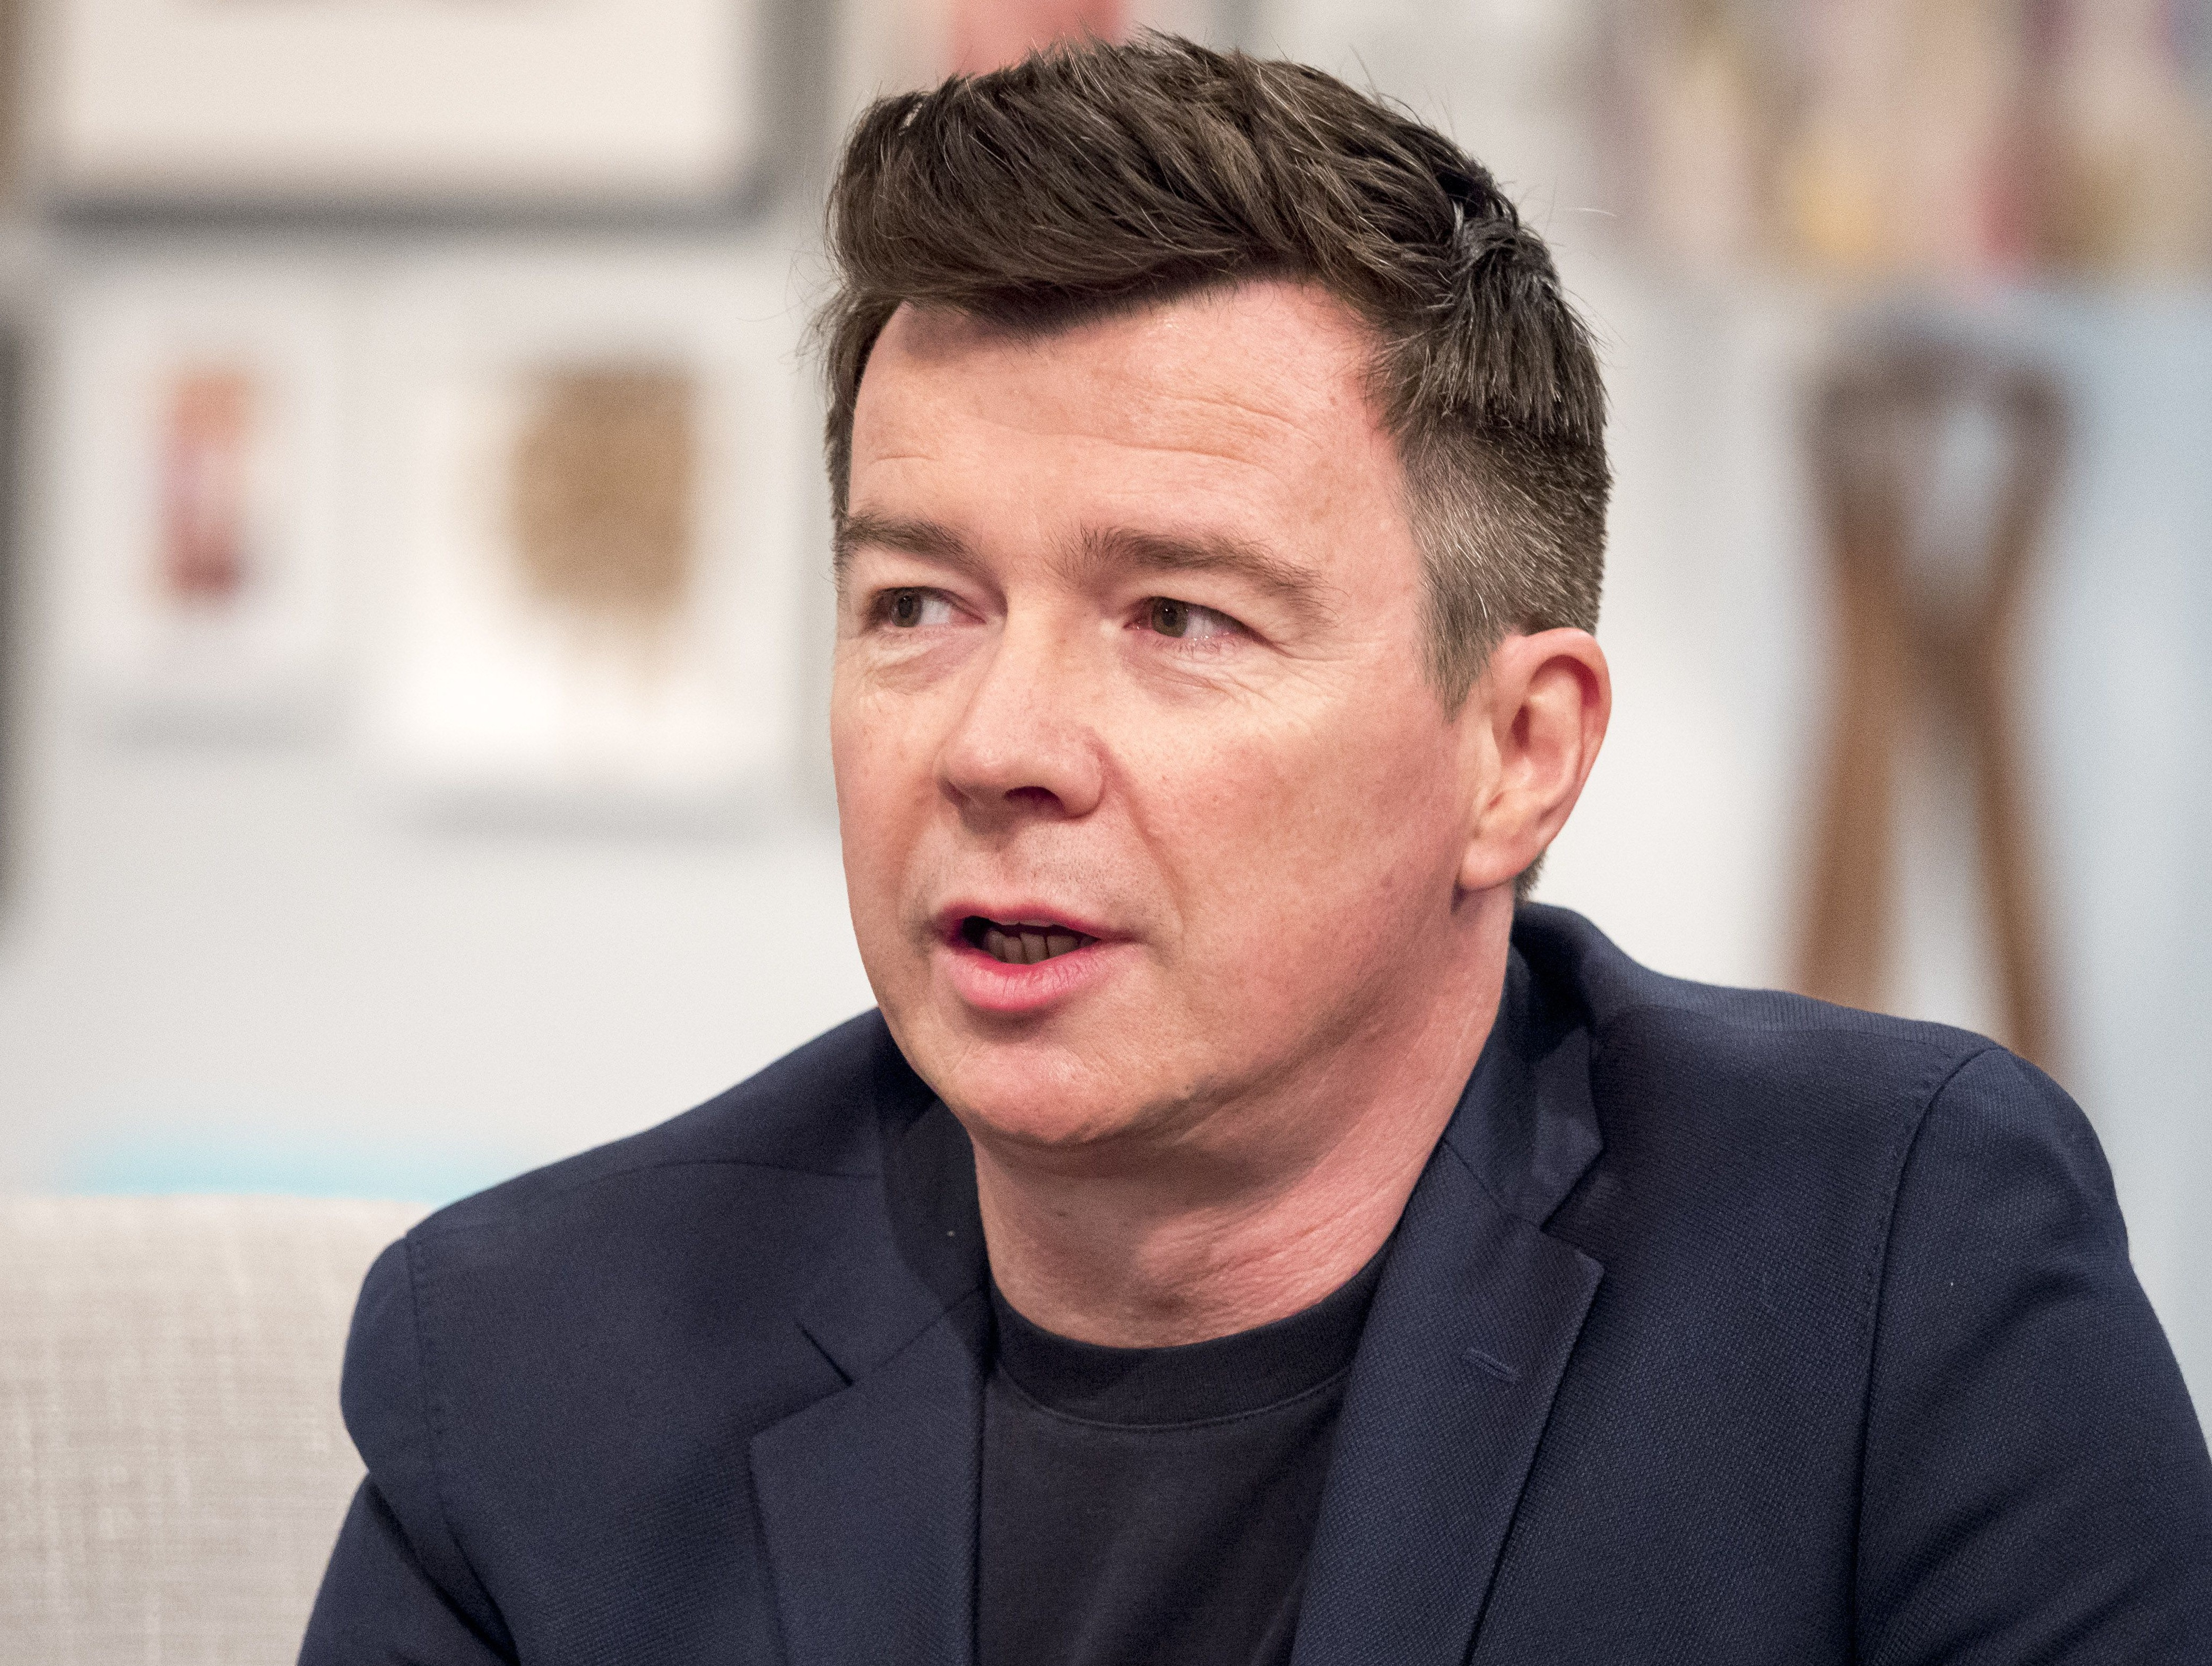 EDITORIAL USE ONLY. NO MERCHANDISING Mandatory Credit: Photo by Ken McKay/ITV/REX/Shutterstock (5624304k) Rick Astley 'Lorraine' TV show, London, Britain - 07 Apr 2016 Rick Astley will be joining Amanda live in the studio to tell us all about his new single and album. Rick was one of the eighties most successful artists and he's now back with his first album in over a decade., Rick also has an exclusive announcement for his fans.